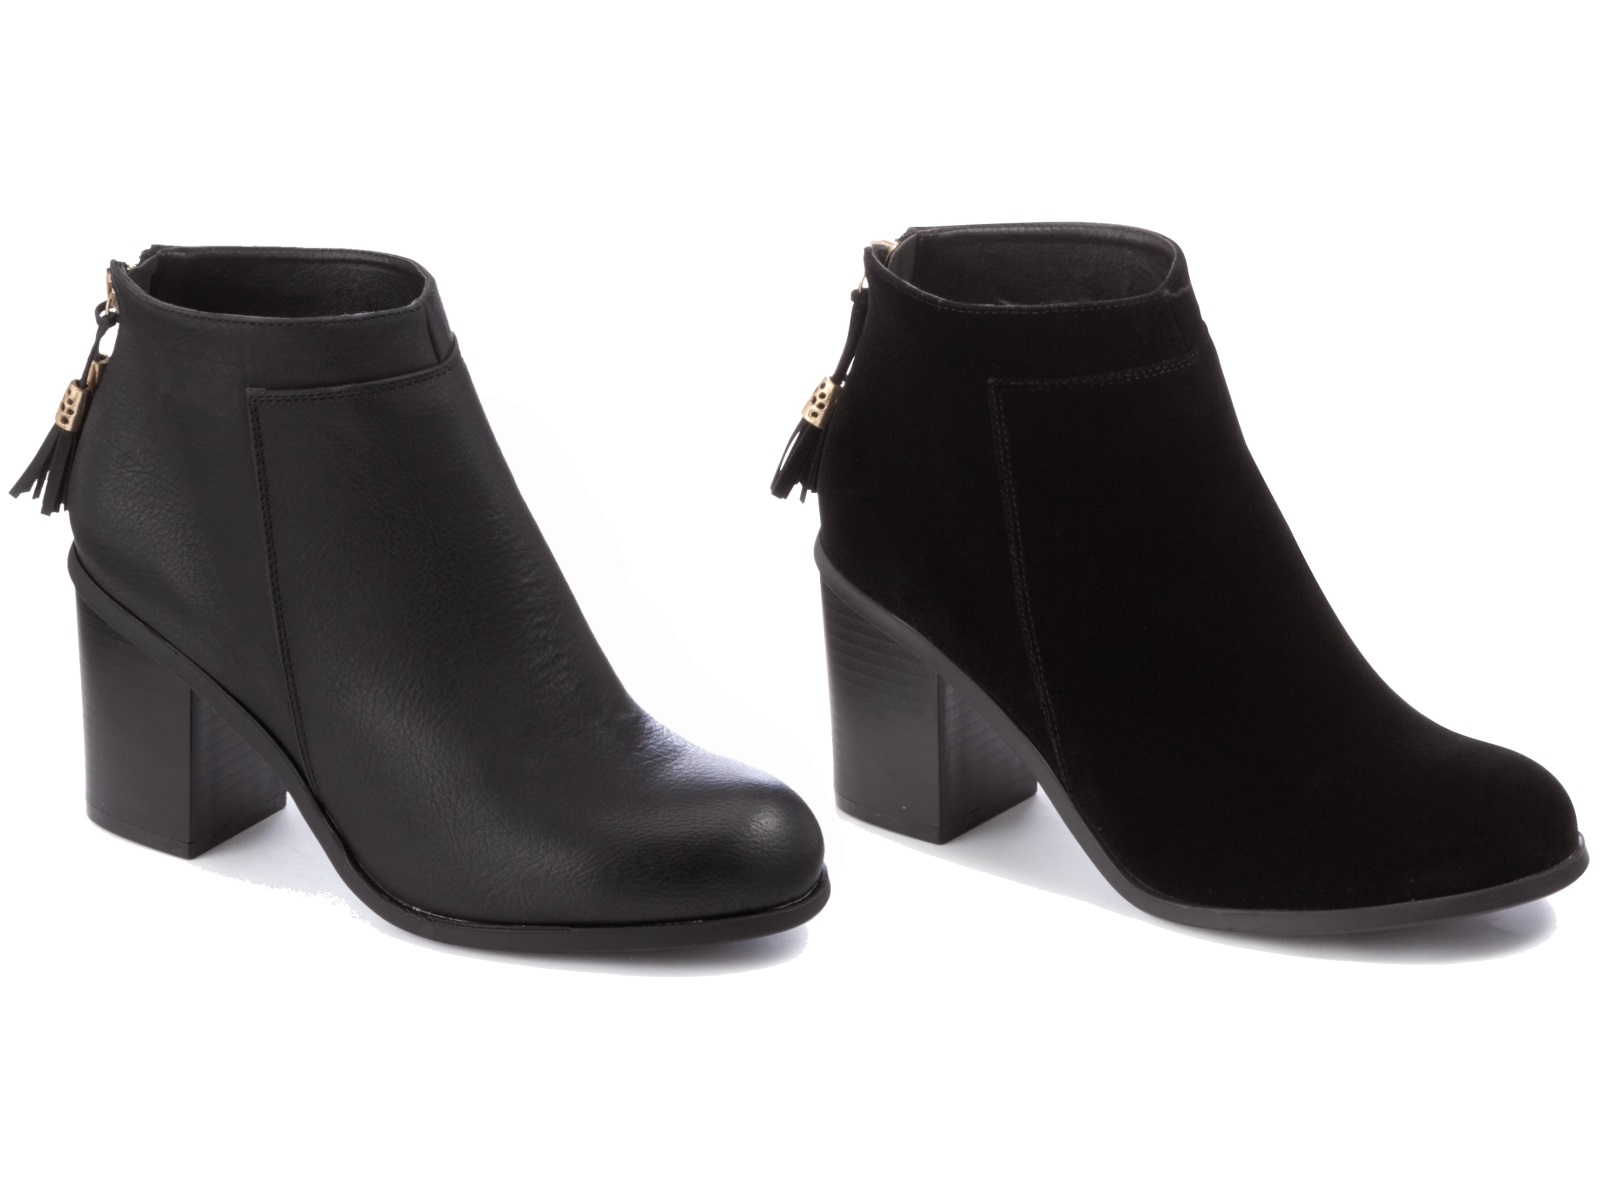 Women's Block Heel Boot in Black online at cripatsur.ga today. Discover women's shoes and boots in the latest trendy styles at great prices.